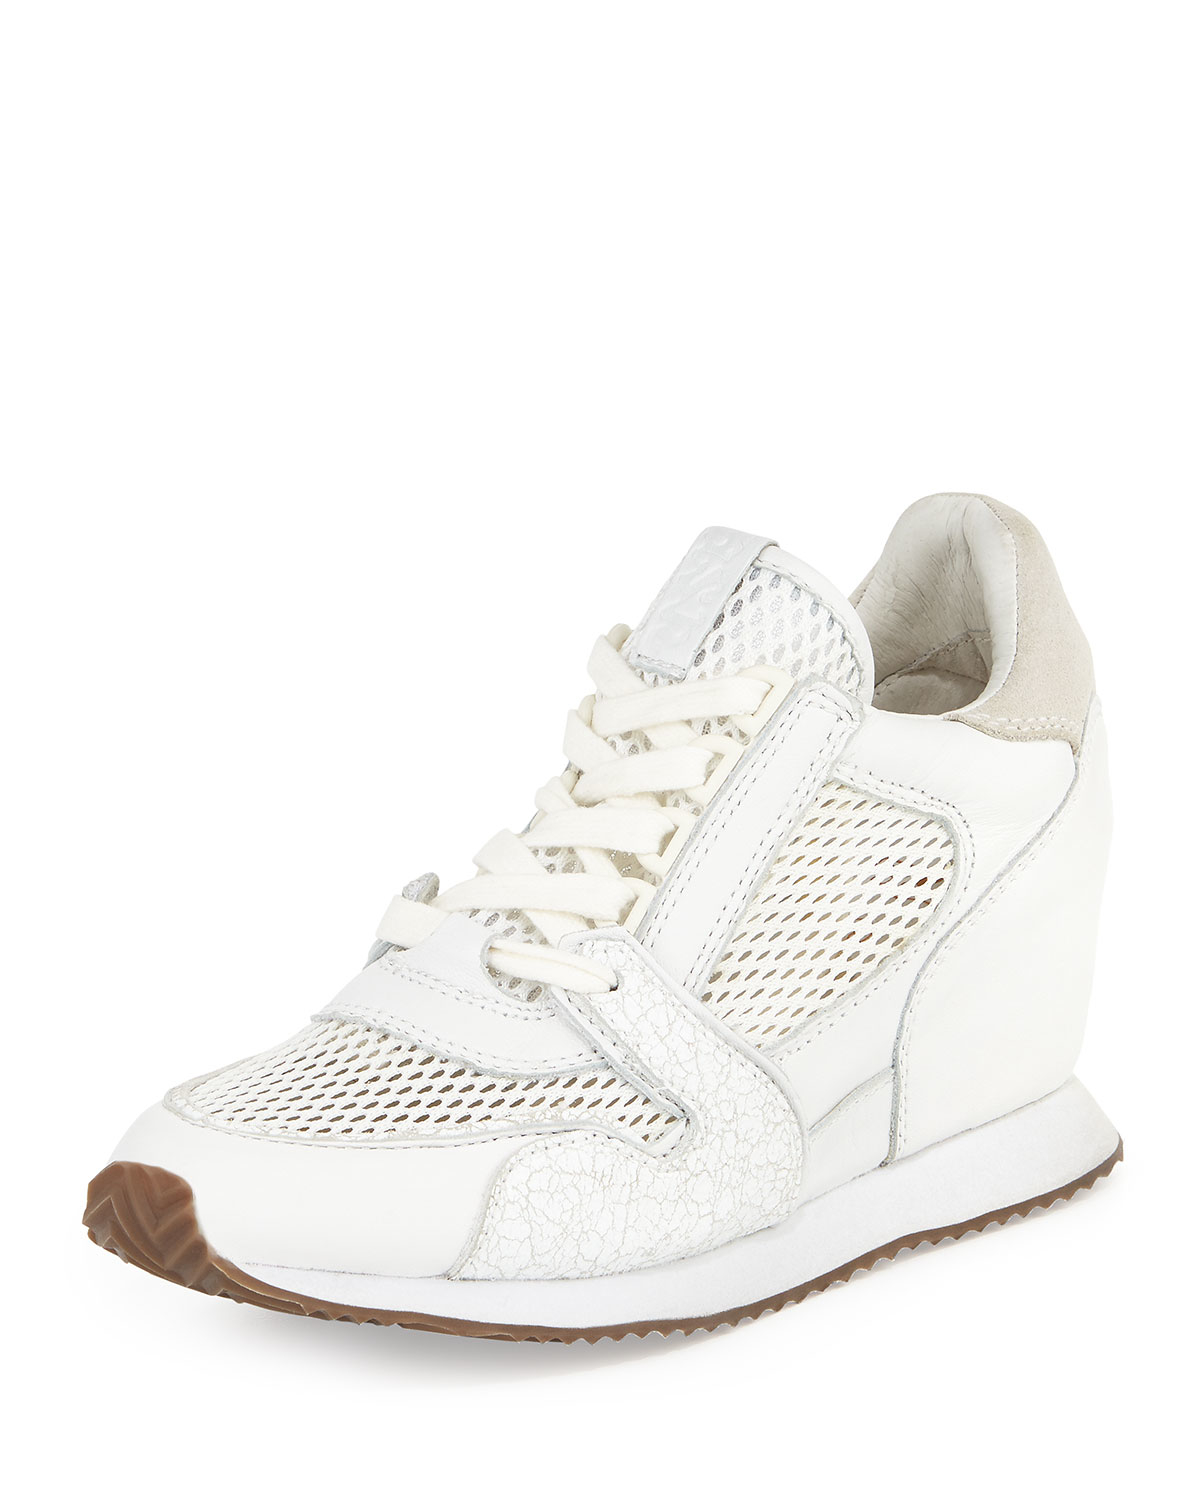 2a741fe47e6 Gallery. Previously sold at  Last Call · Women s Wedge Sneakers Women s Ash  ...